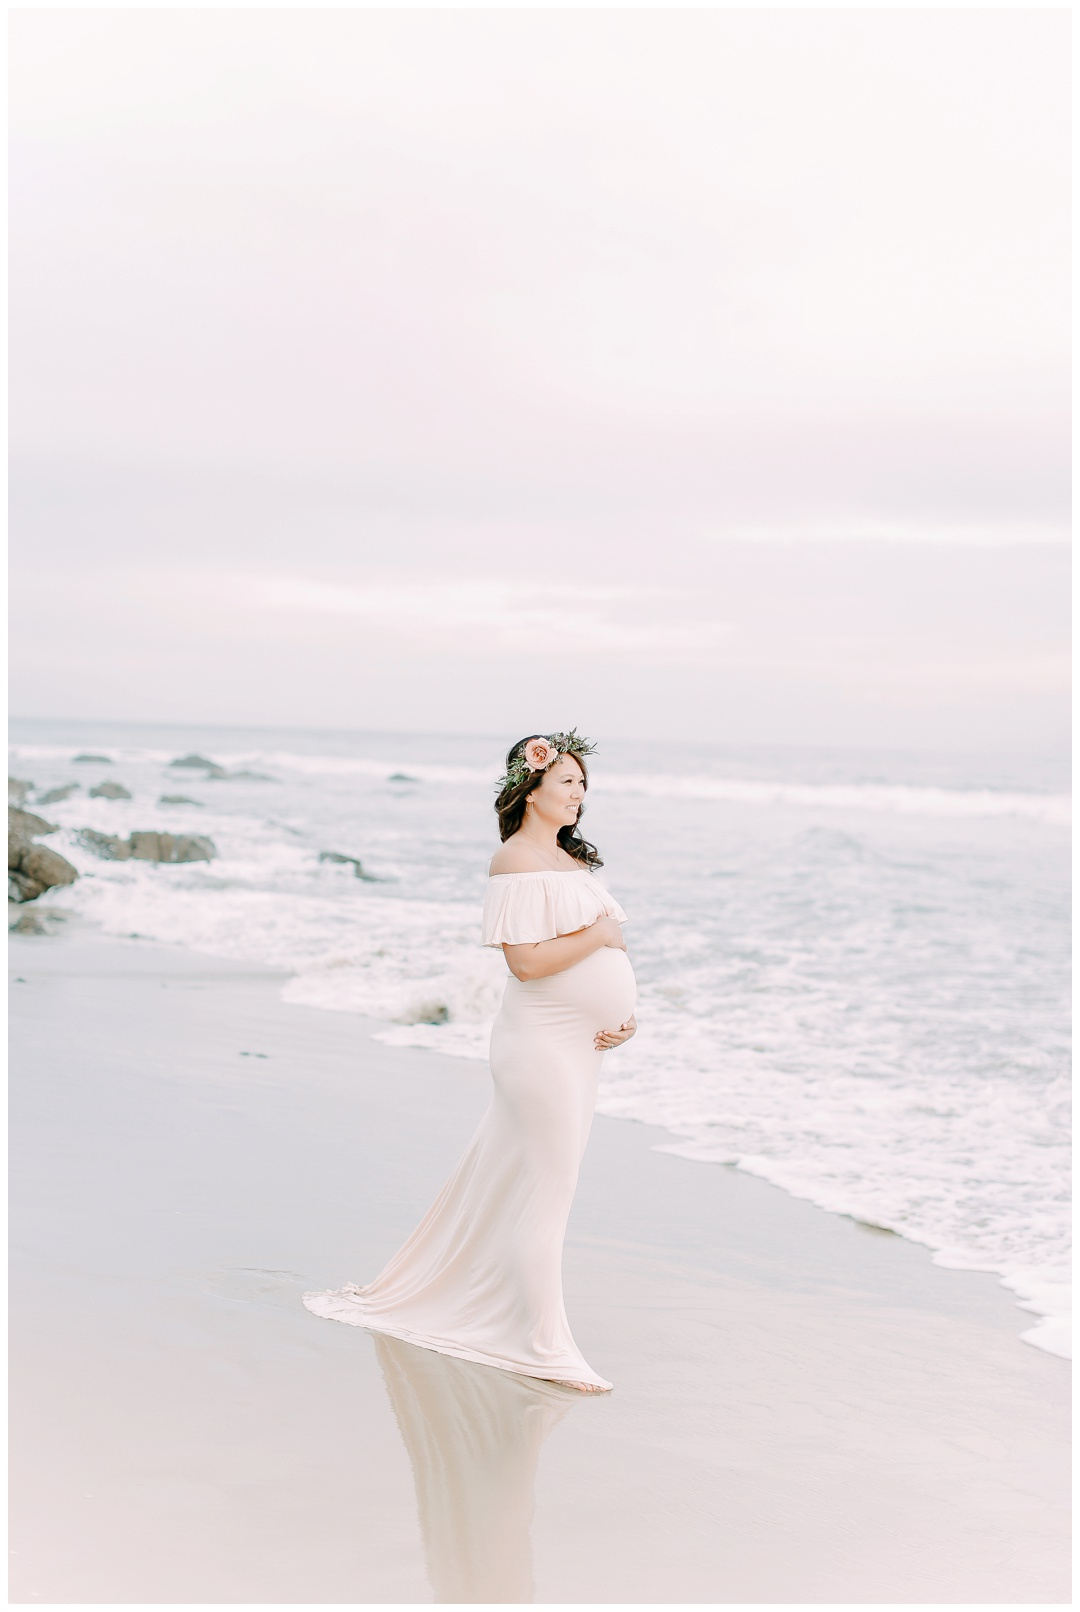 Newport_Beach_Maternity_Photographer_Orange_County_Maternity_Photography_Cori_Kleckner_Photography_Orange_County_Family_Photographer_Beach_Maternity_Session_1138.jpg